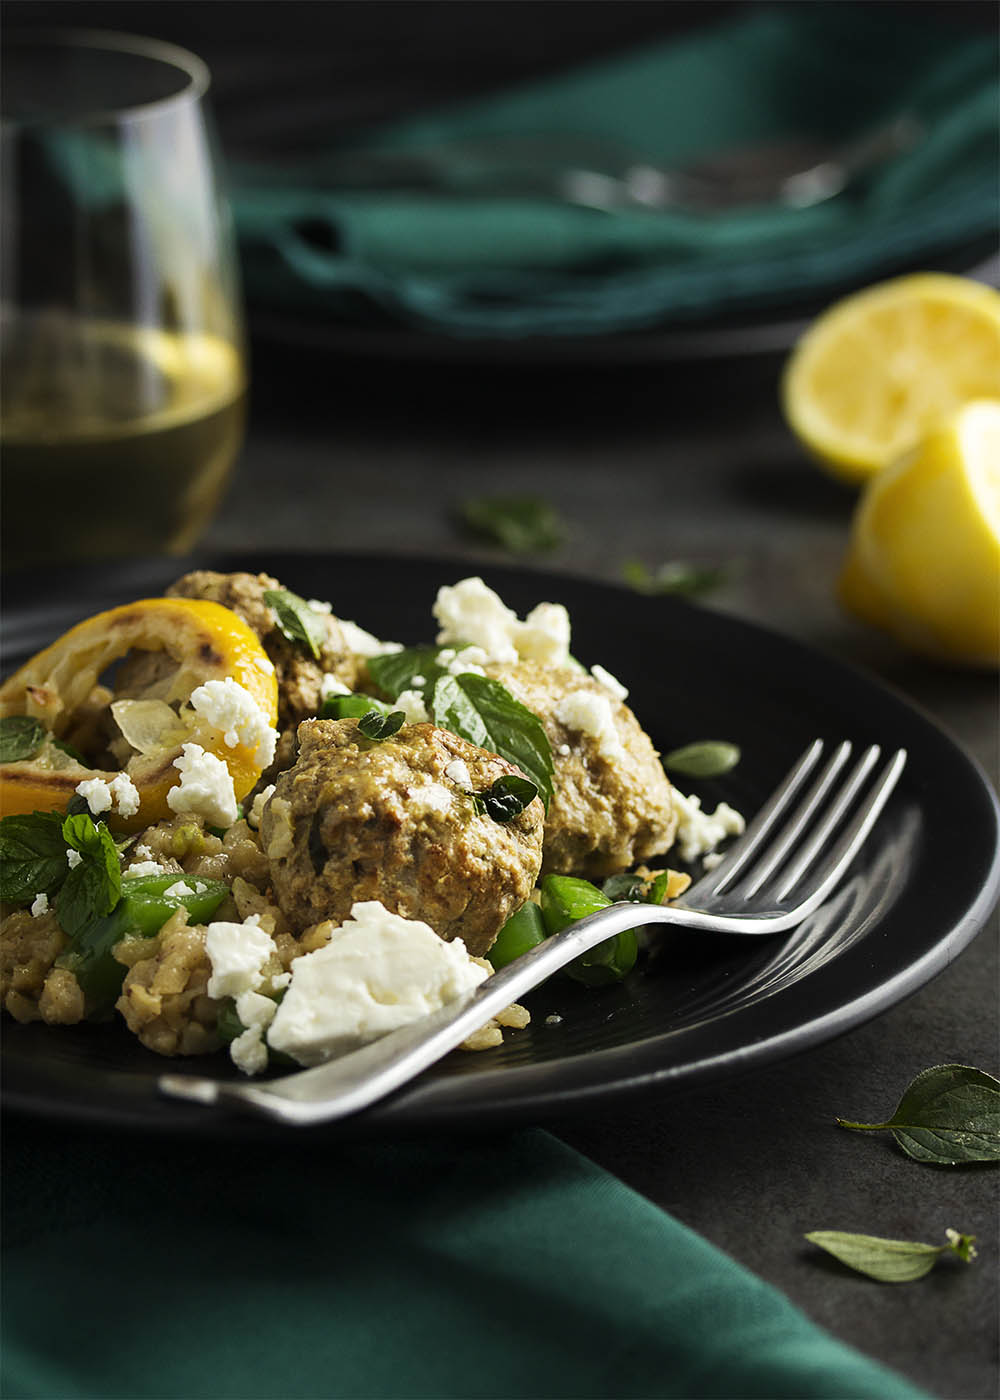 Great and easy one pot meal which starts on the stove and finishes in the oven! Greek lamb meatballs and brown rice is a healthy, complete meal full of the flavors of mint and thyme and finished with a crumble of feta.   justalittlebitofbacon.com